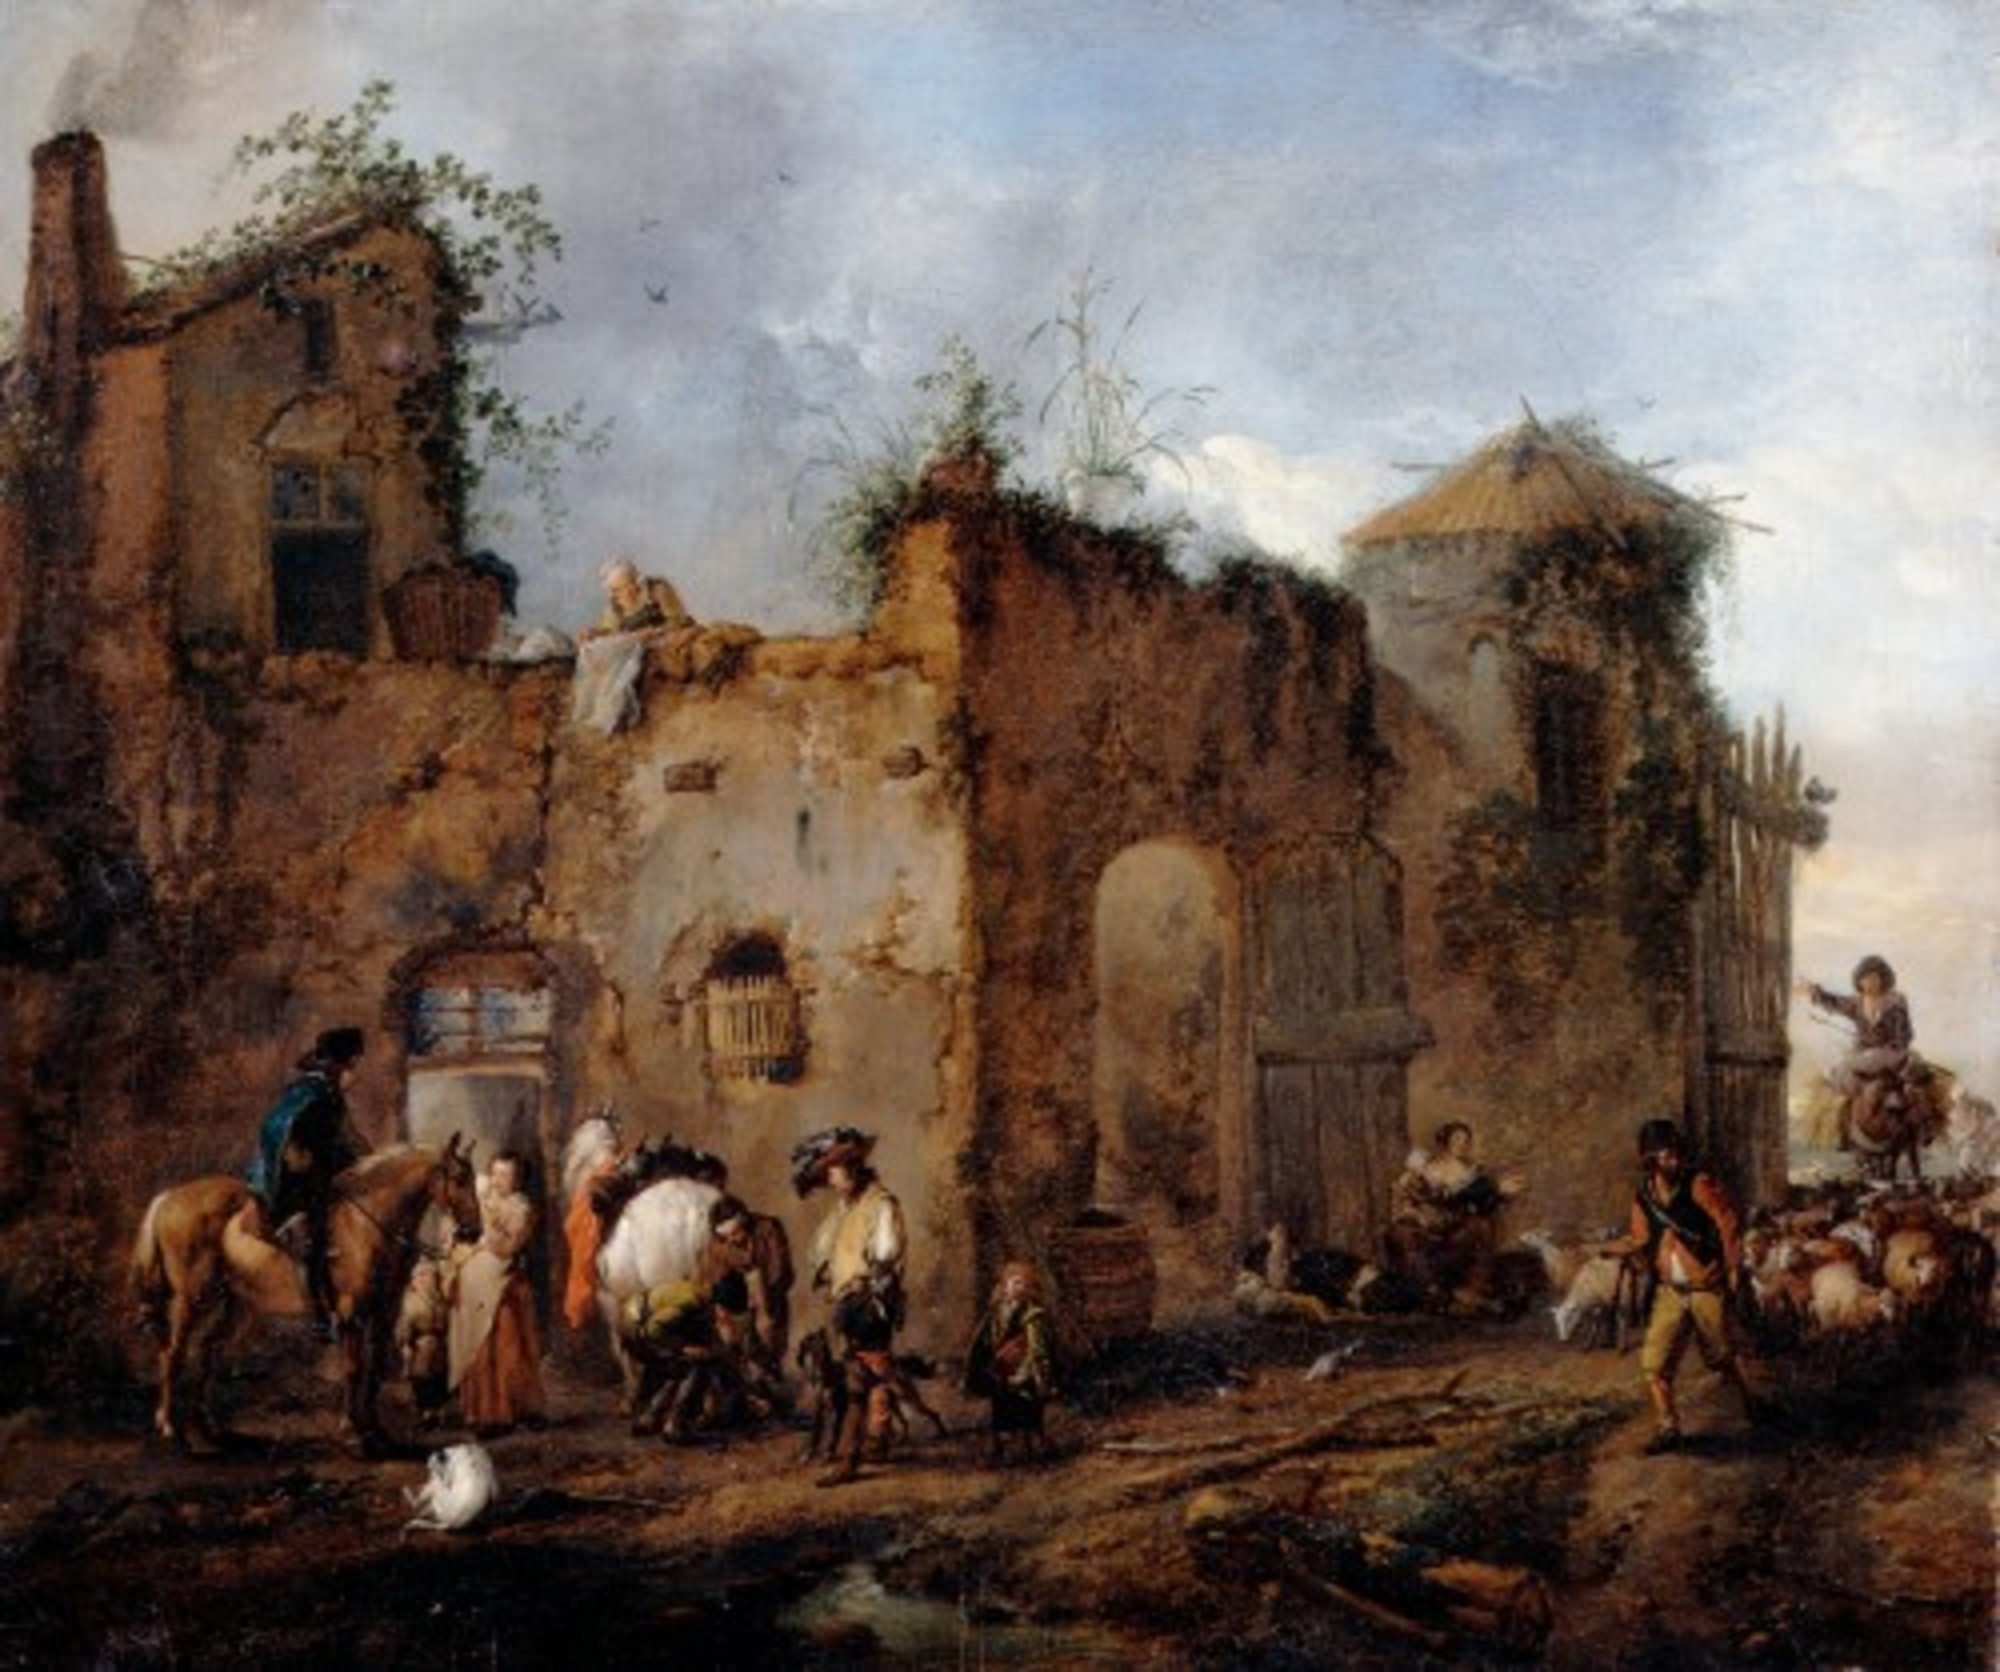 Wouwerman-Philips---Courtyard-with-a-Farrier-shoeing-a-Horse---Google-Art-Project.jpg